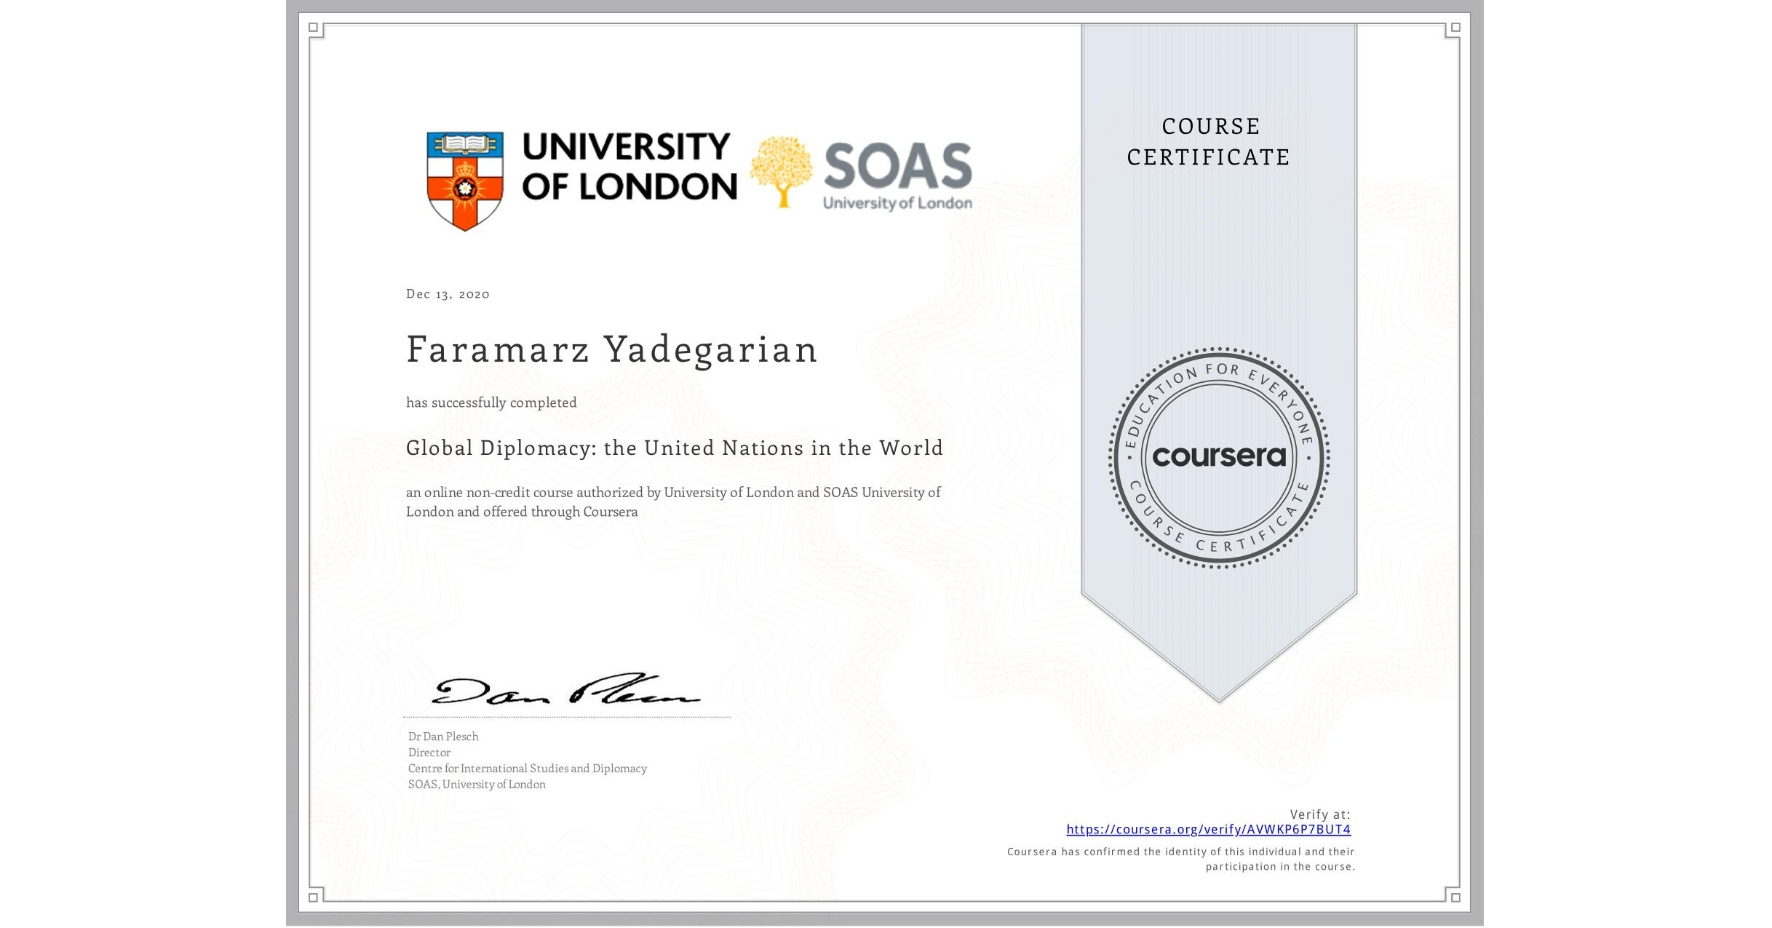 View certificate for Faramarz Yadegarian, Global Diplomacy: the United Nations in the World, an online non-credit course authorized by University of London & SOAS University of London and offered through Coursera